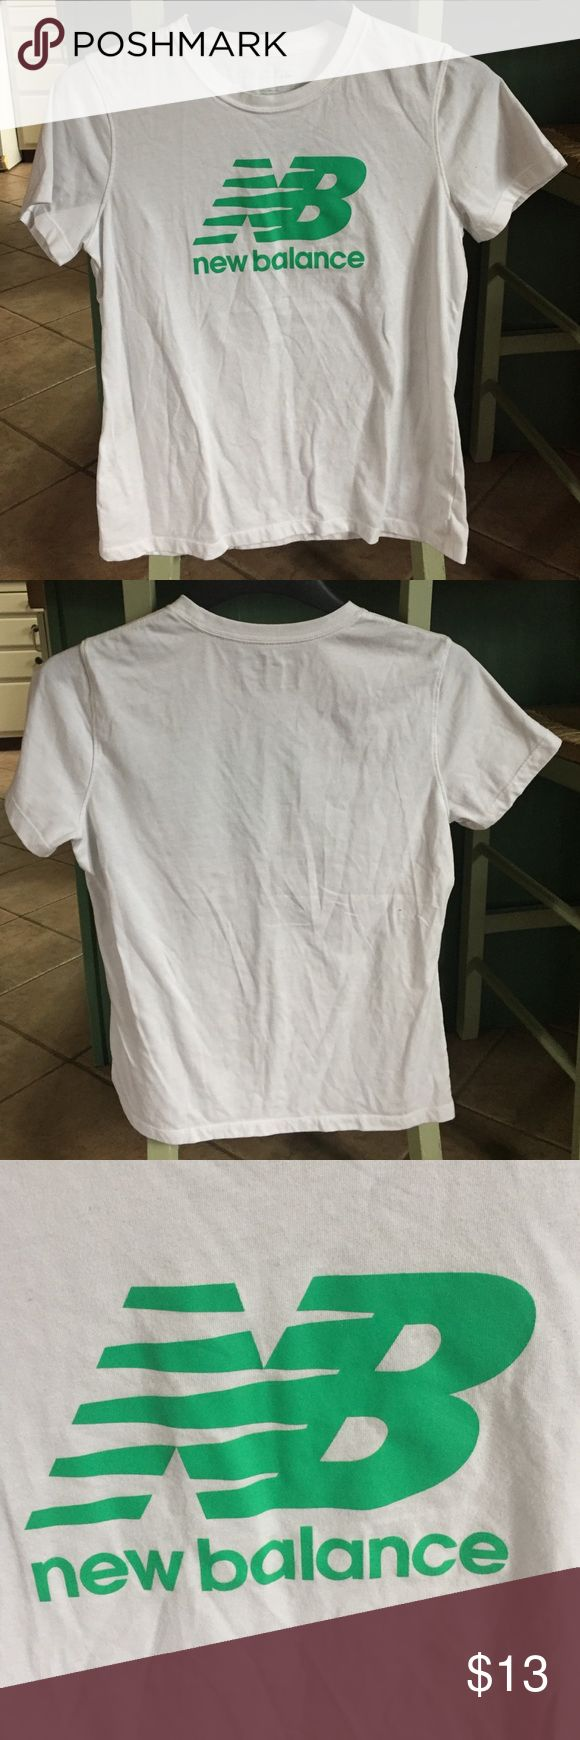 White & Green New Balance T-shirt New Balance brand. Size medium. White & Green. Short sleeve. NO issues, NO stains, NO marks. NEVER worn. New Balance Tops Tees - Short Sleeve